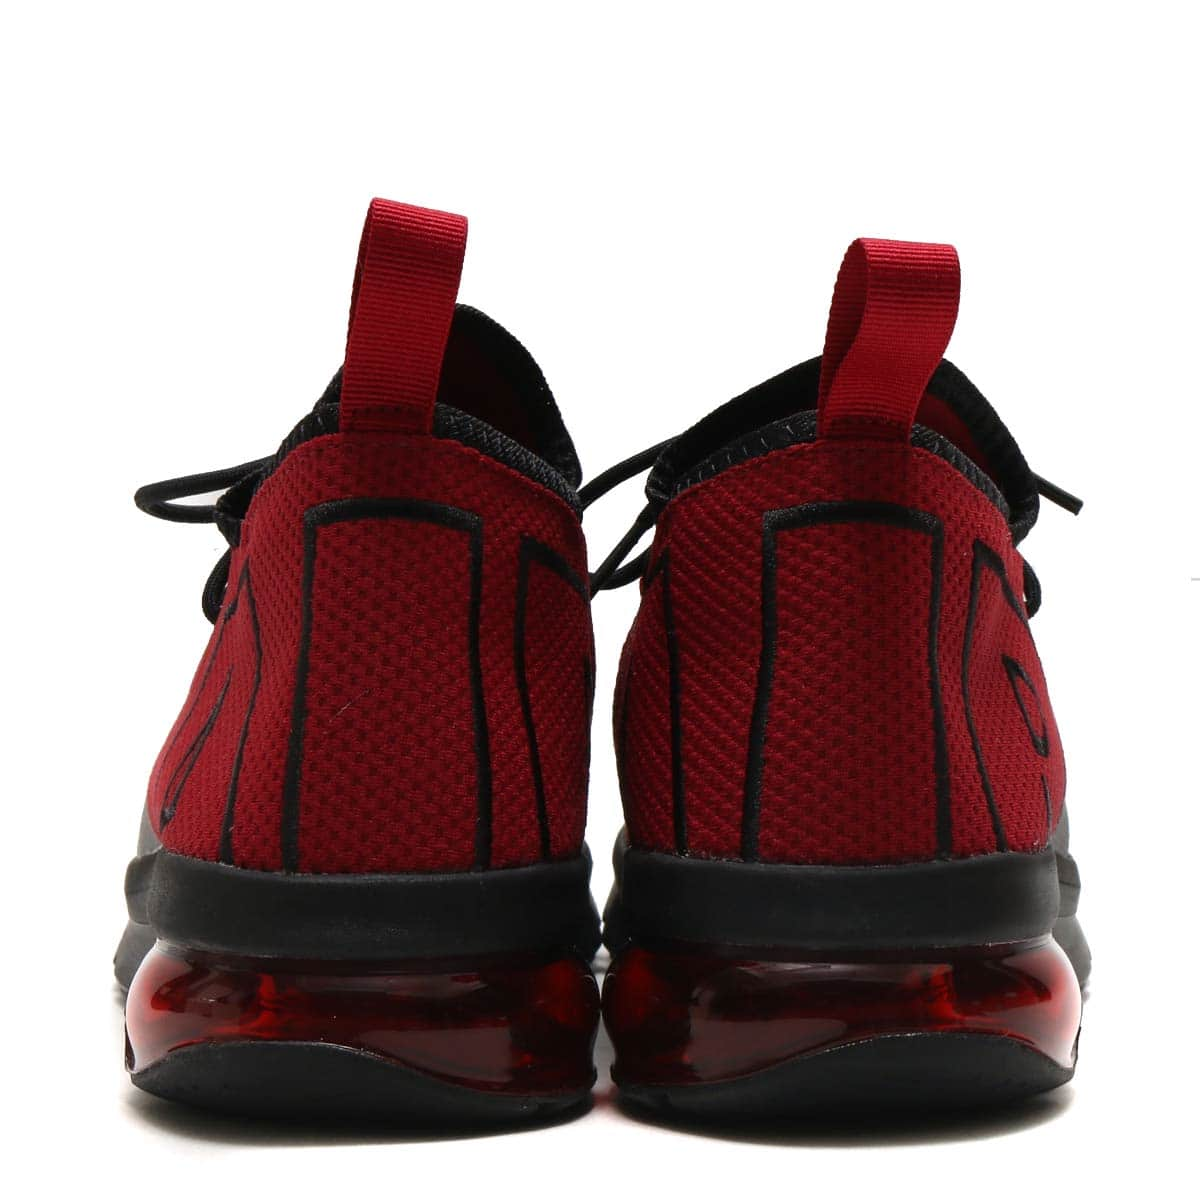 707a3de647 NIKE AIR MAX FLAIR 50 TEAM RED/BLACK-TEAM RED. aa3824-600. 5 / -2